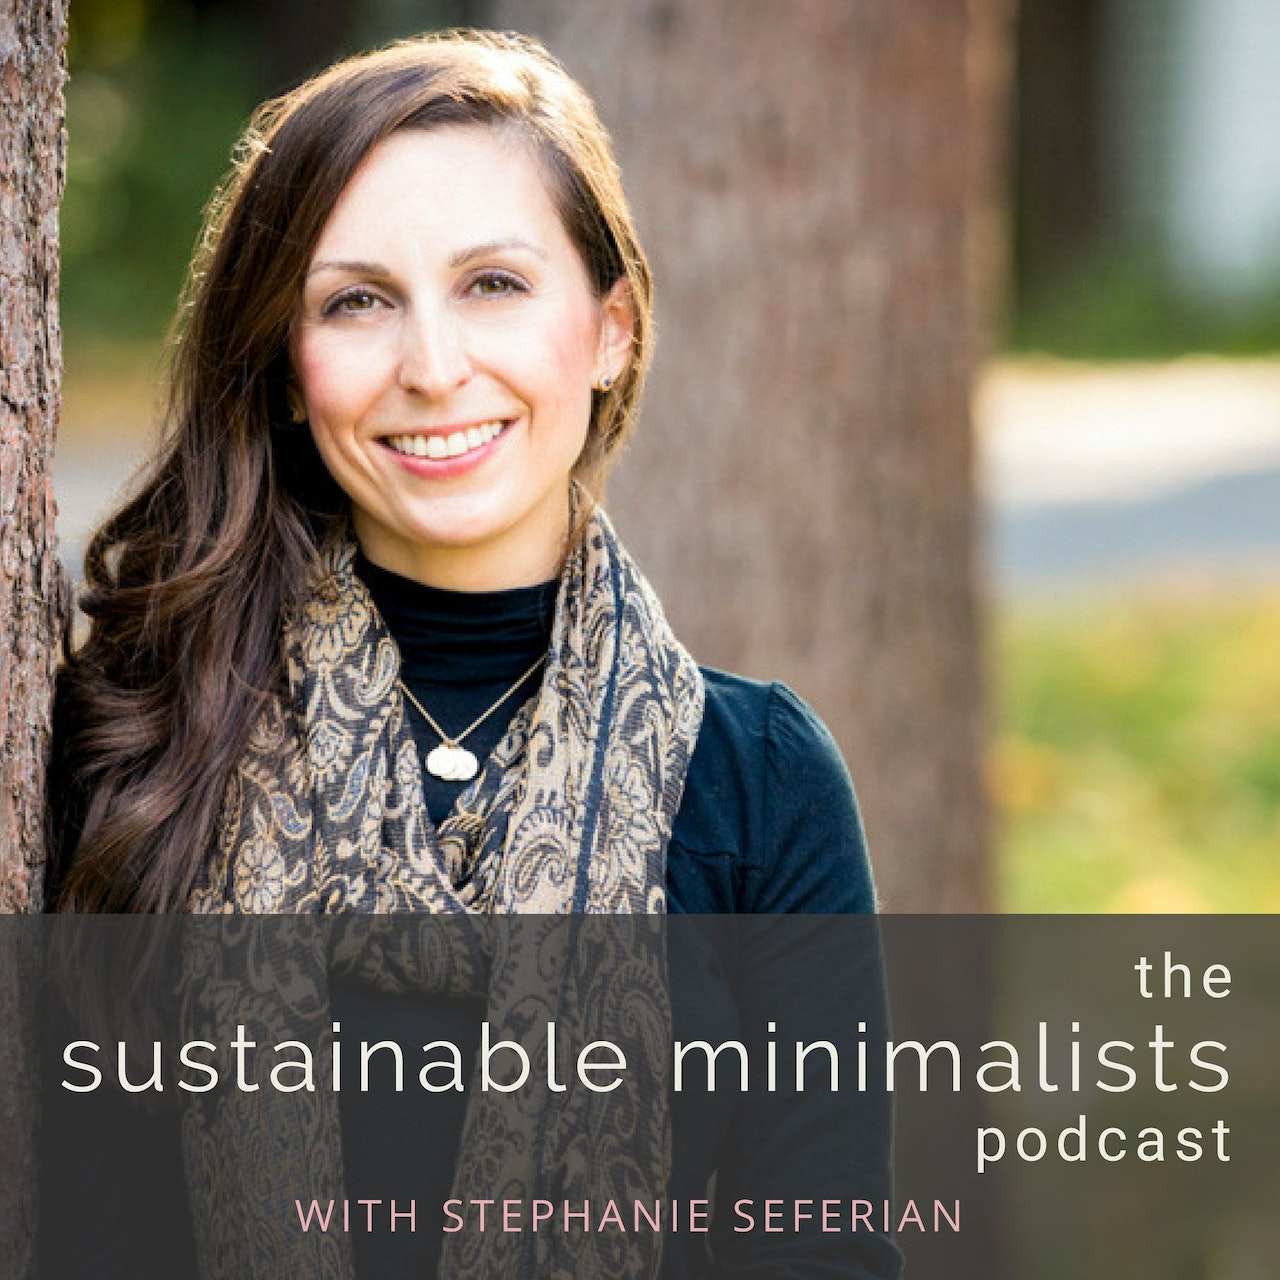 The Sustainable Minimalists Podcast by Stephanie Seferian with Conscious by Chloé